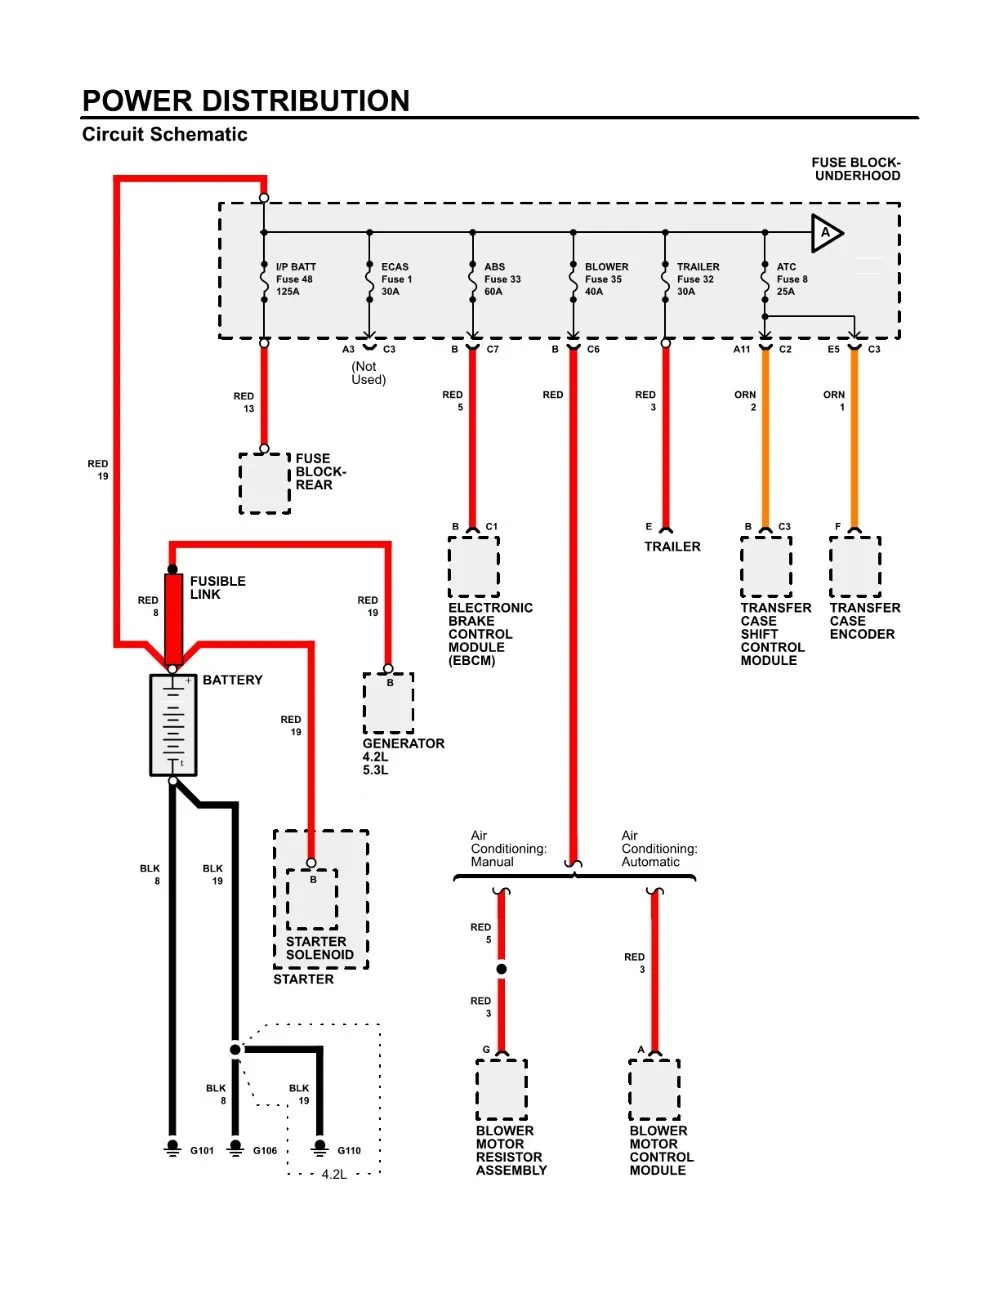 hight resolution of 2003 chevy trailblazer blower motor resistor wiring diagram wiring victoria fuse diagram on trailblazer blower motor resistor motor